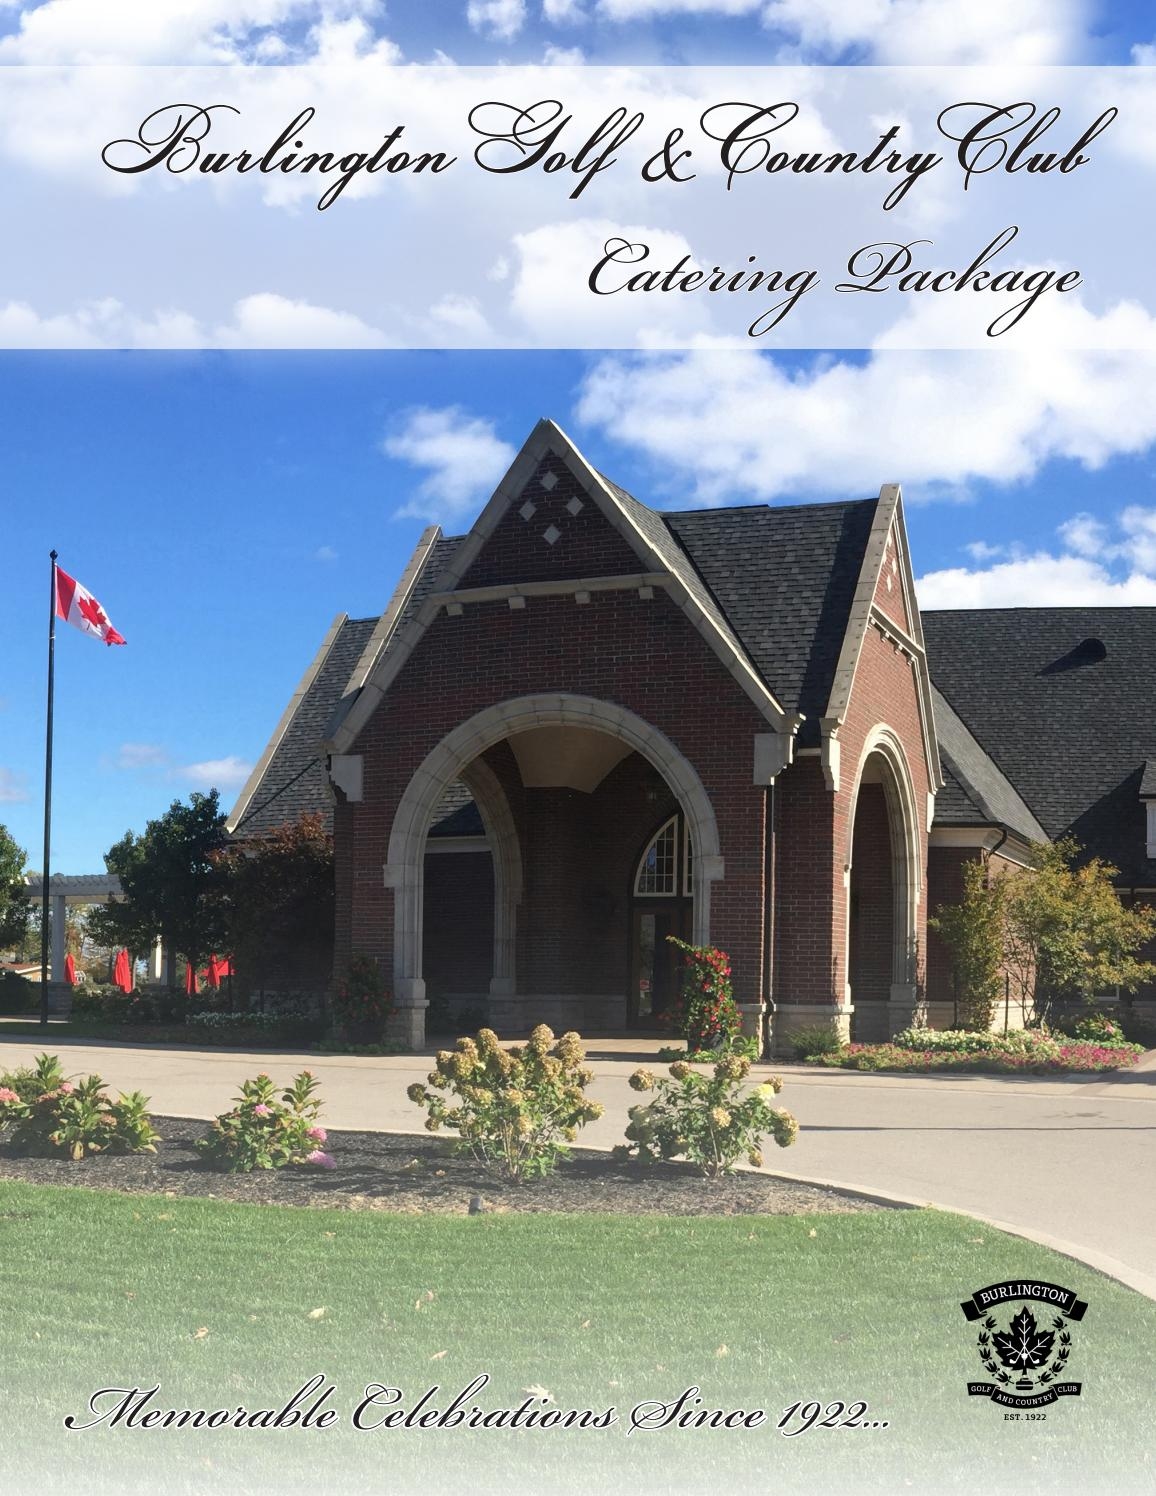 BGCC Catering Package by Burlington Golf and Country Club